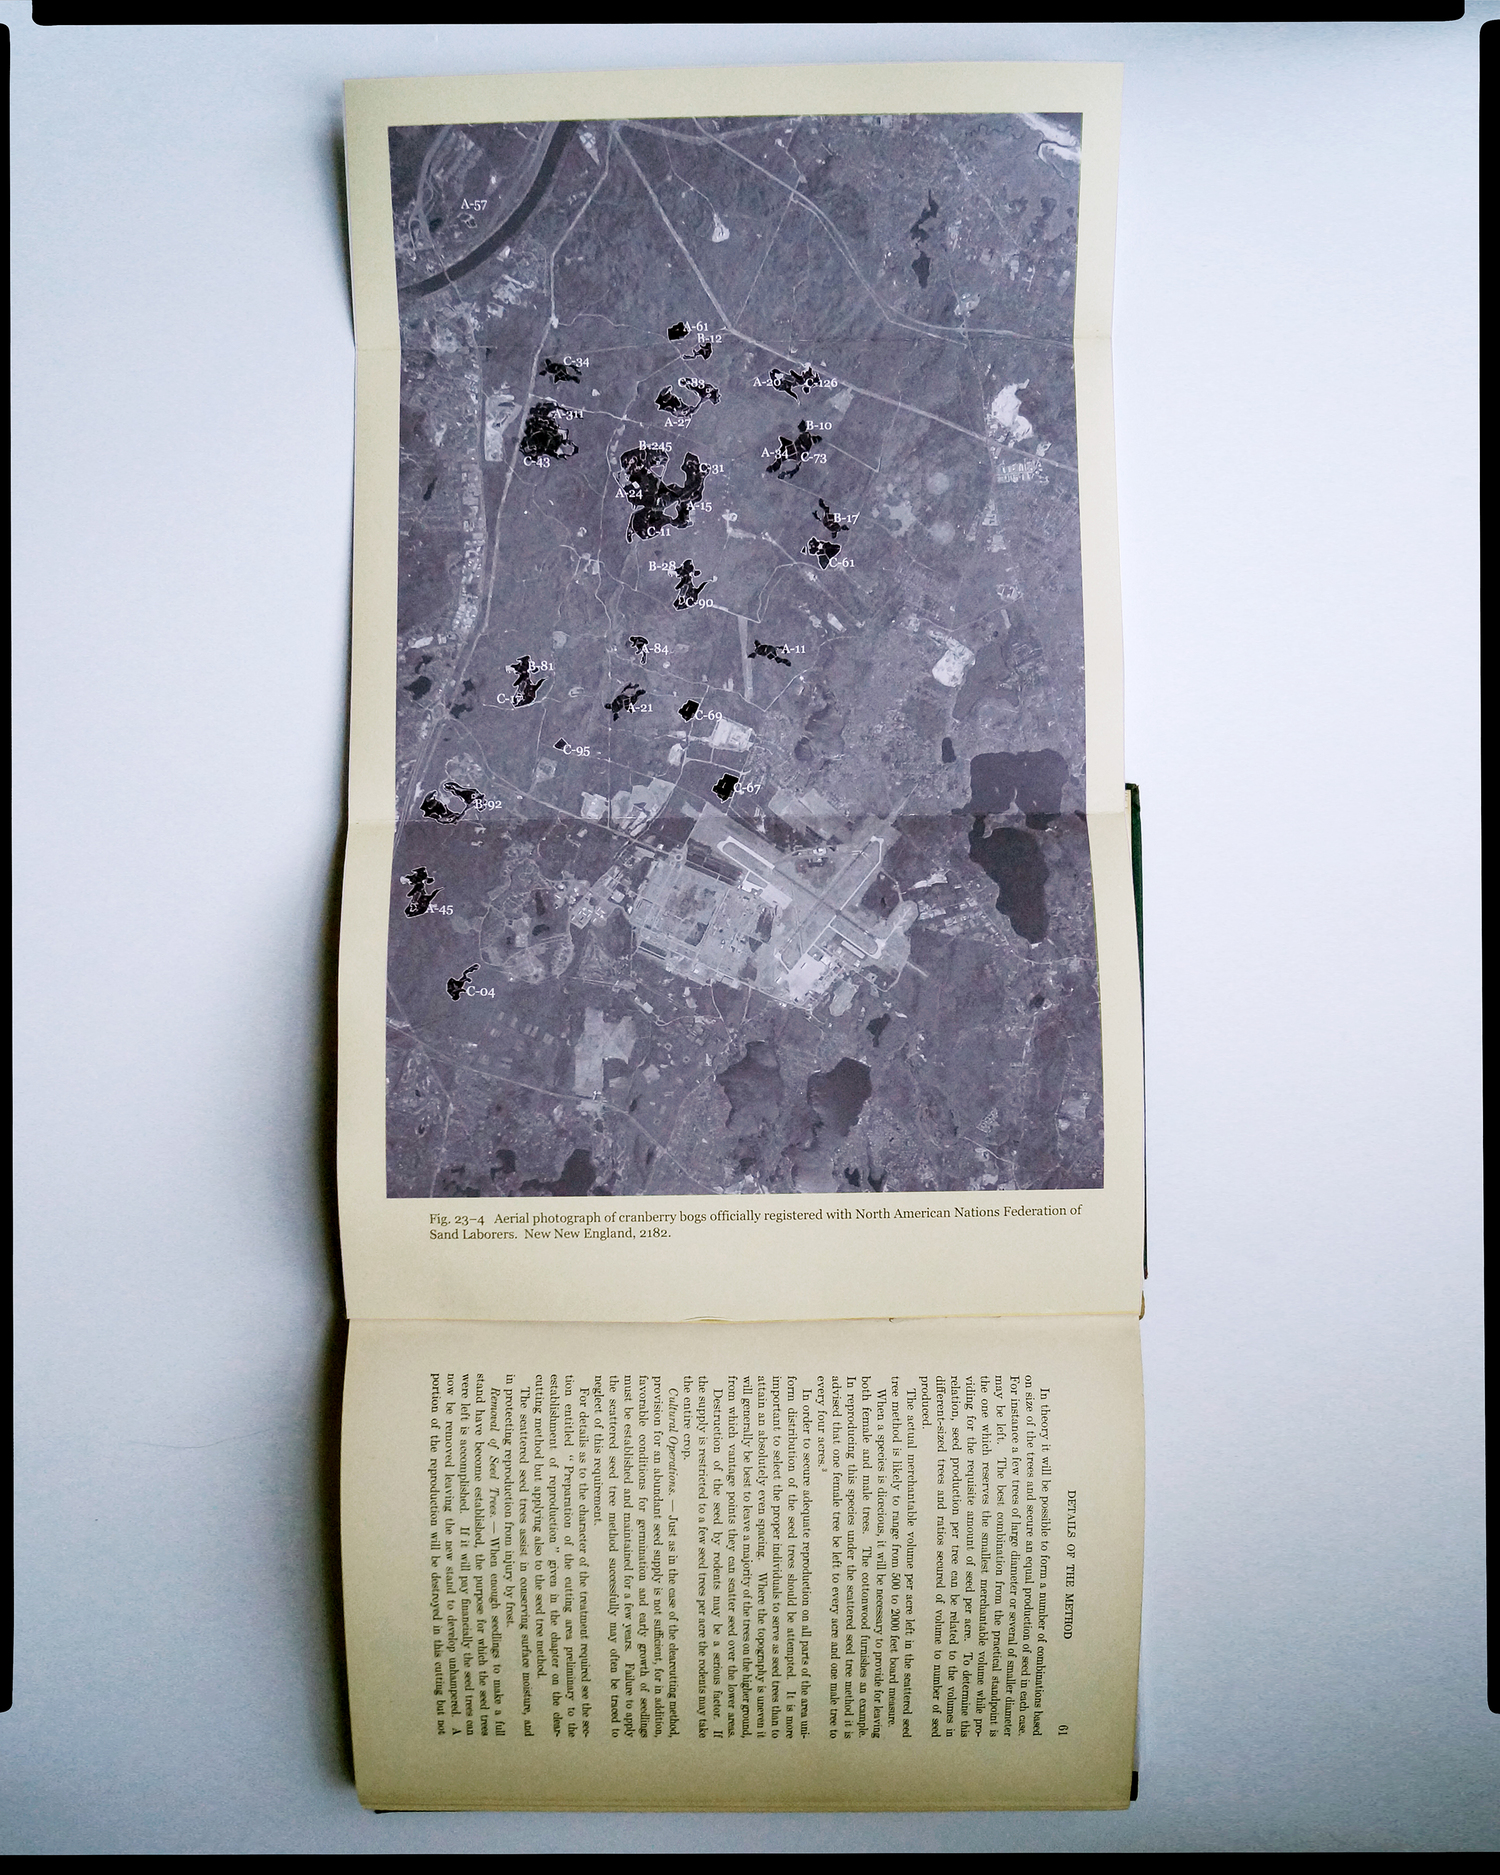 """"""" Experiments in New American Forestry and Agriculture ."""" Aerial photography of cranberry bogs developed under the 2075 ONAN-SA policy of low-bog mining, in collaboration with the Cranberry Bog Tenancy Trust; Penguin, McMillan & Muller, 2182."""